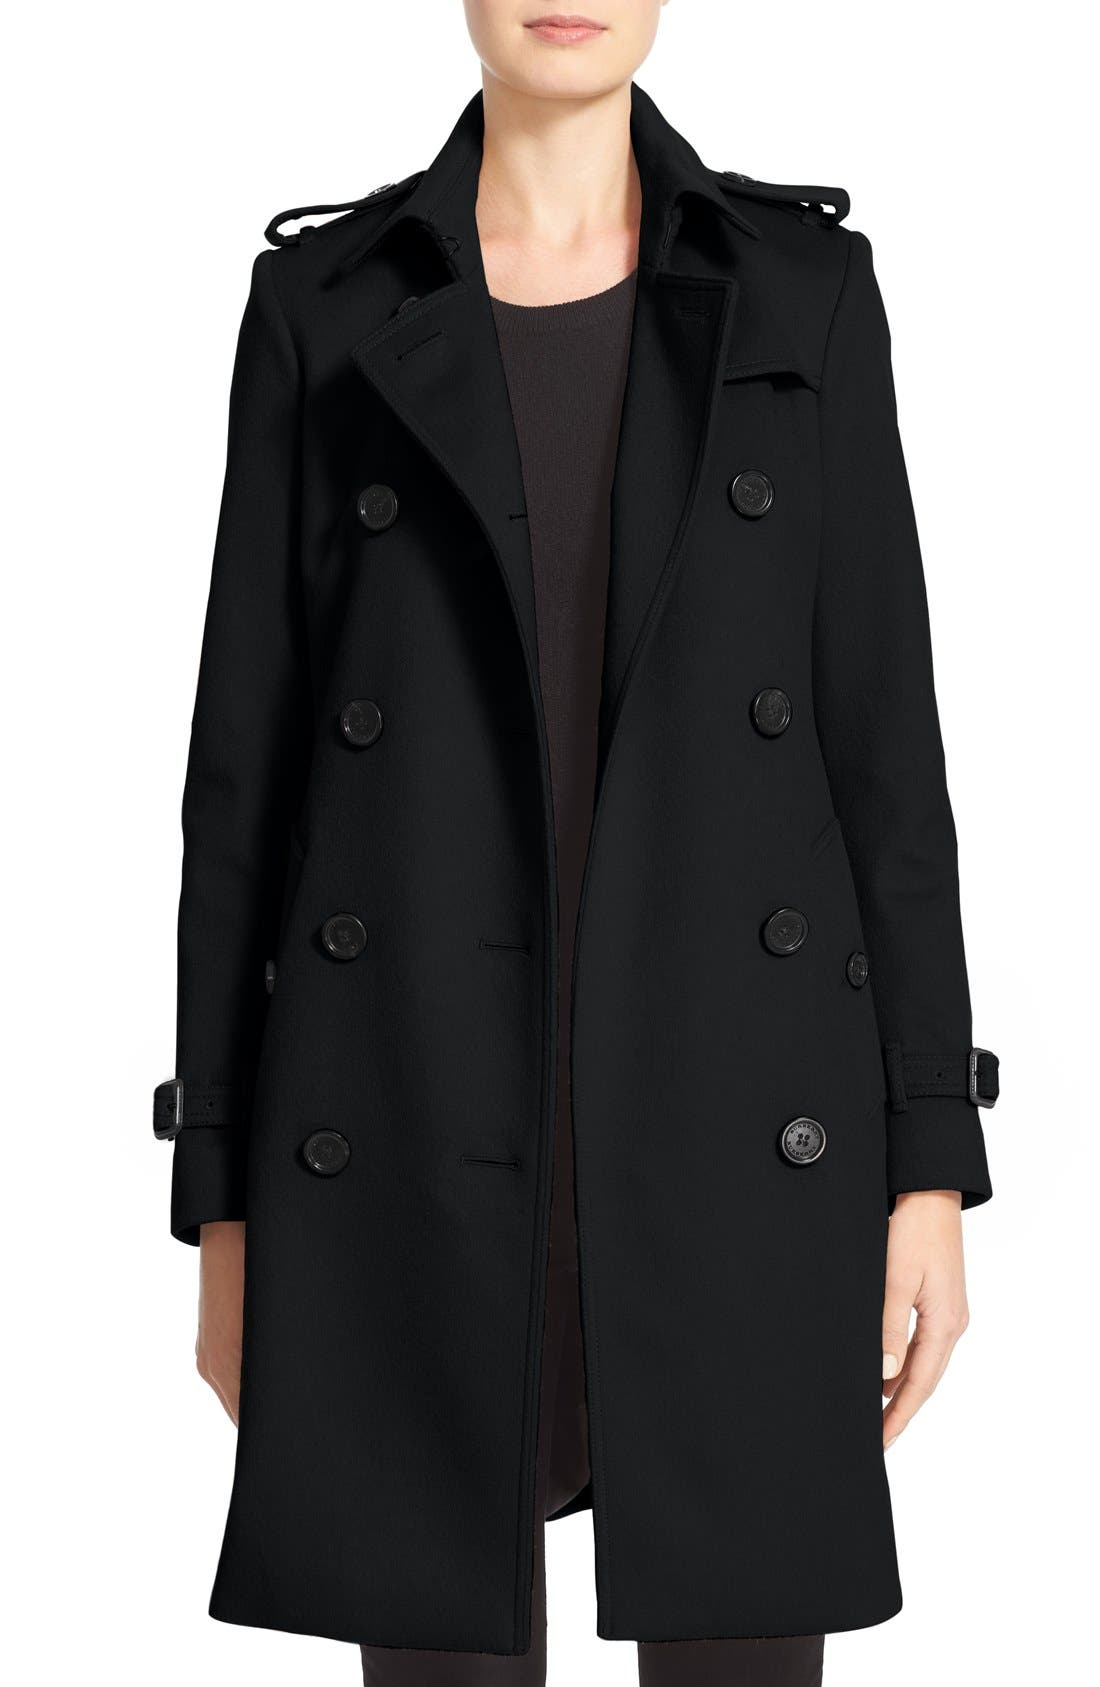 Kensington Double Breasted Wool & Cashmere Trench Coat,                         Main,                         color, 001